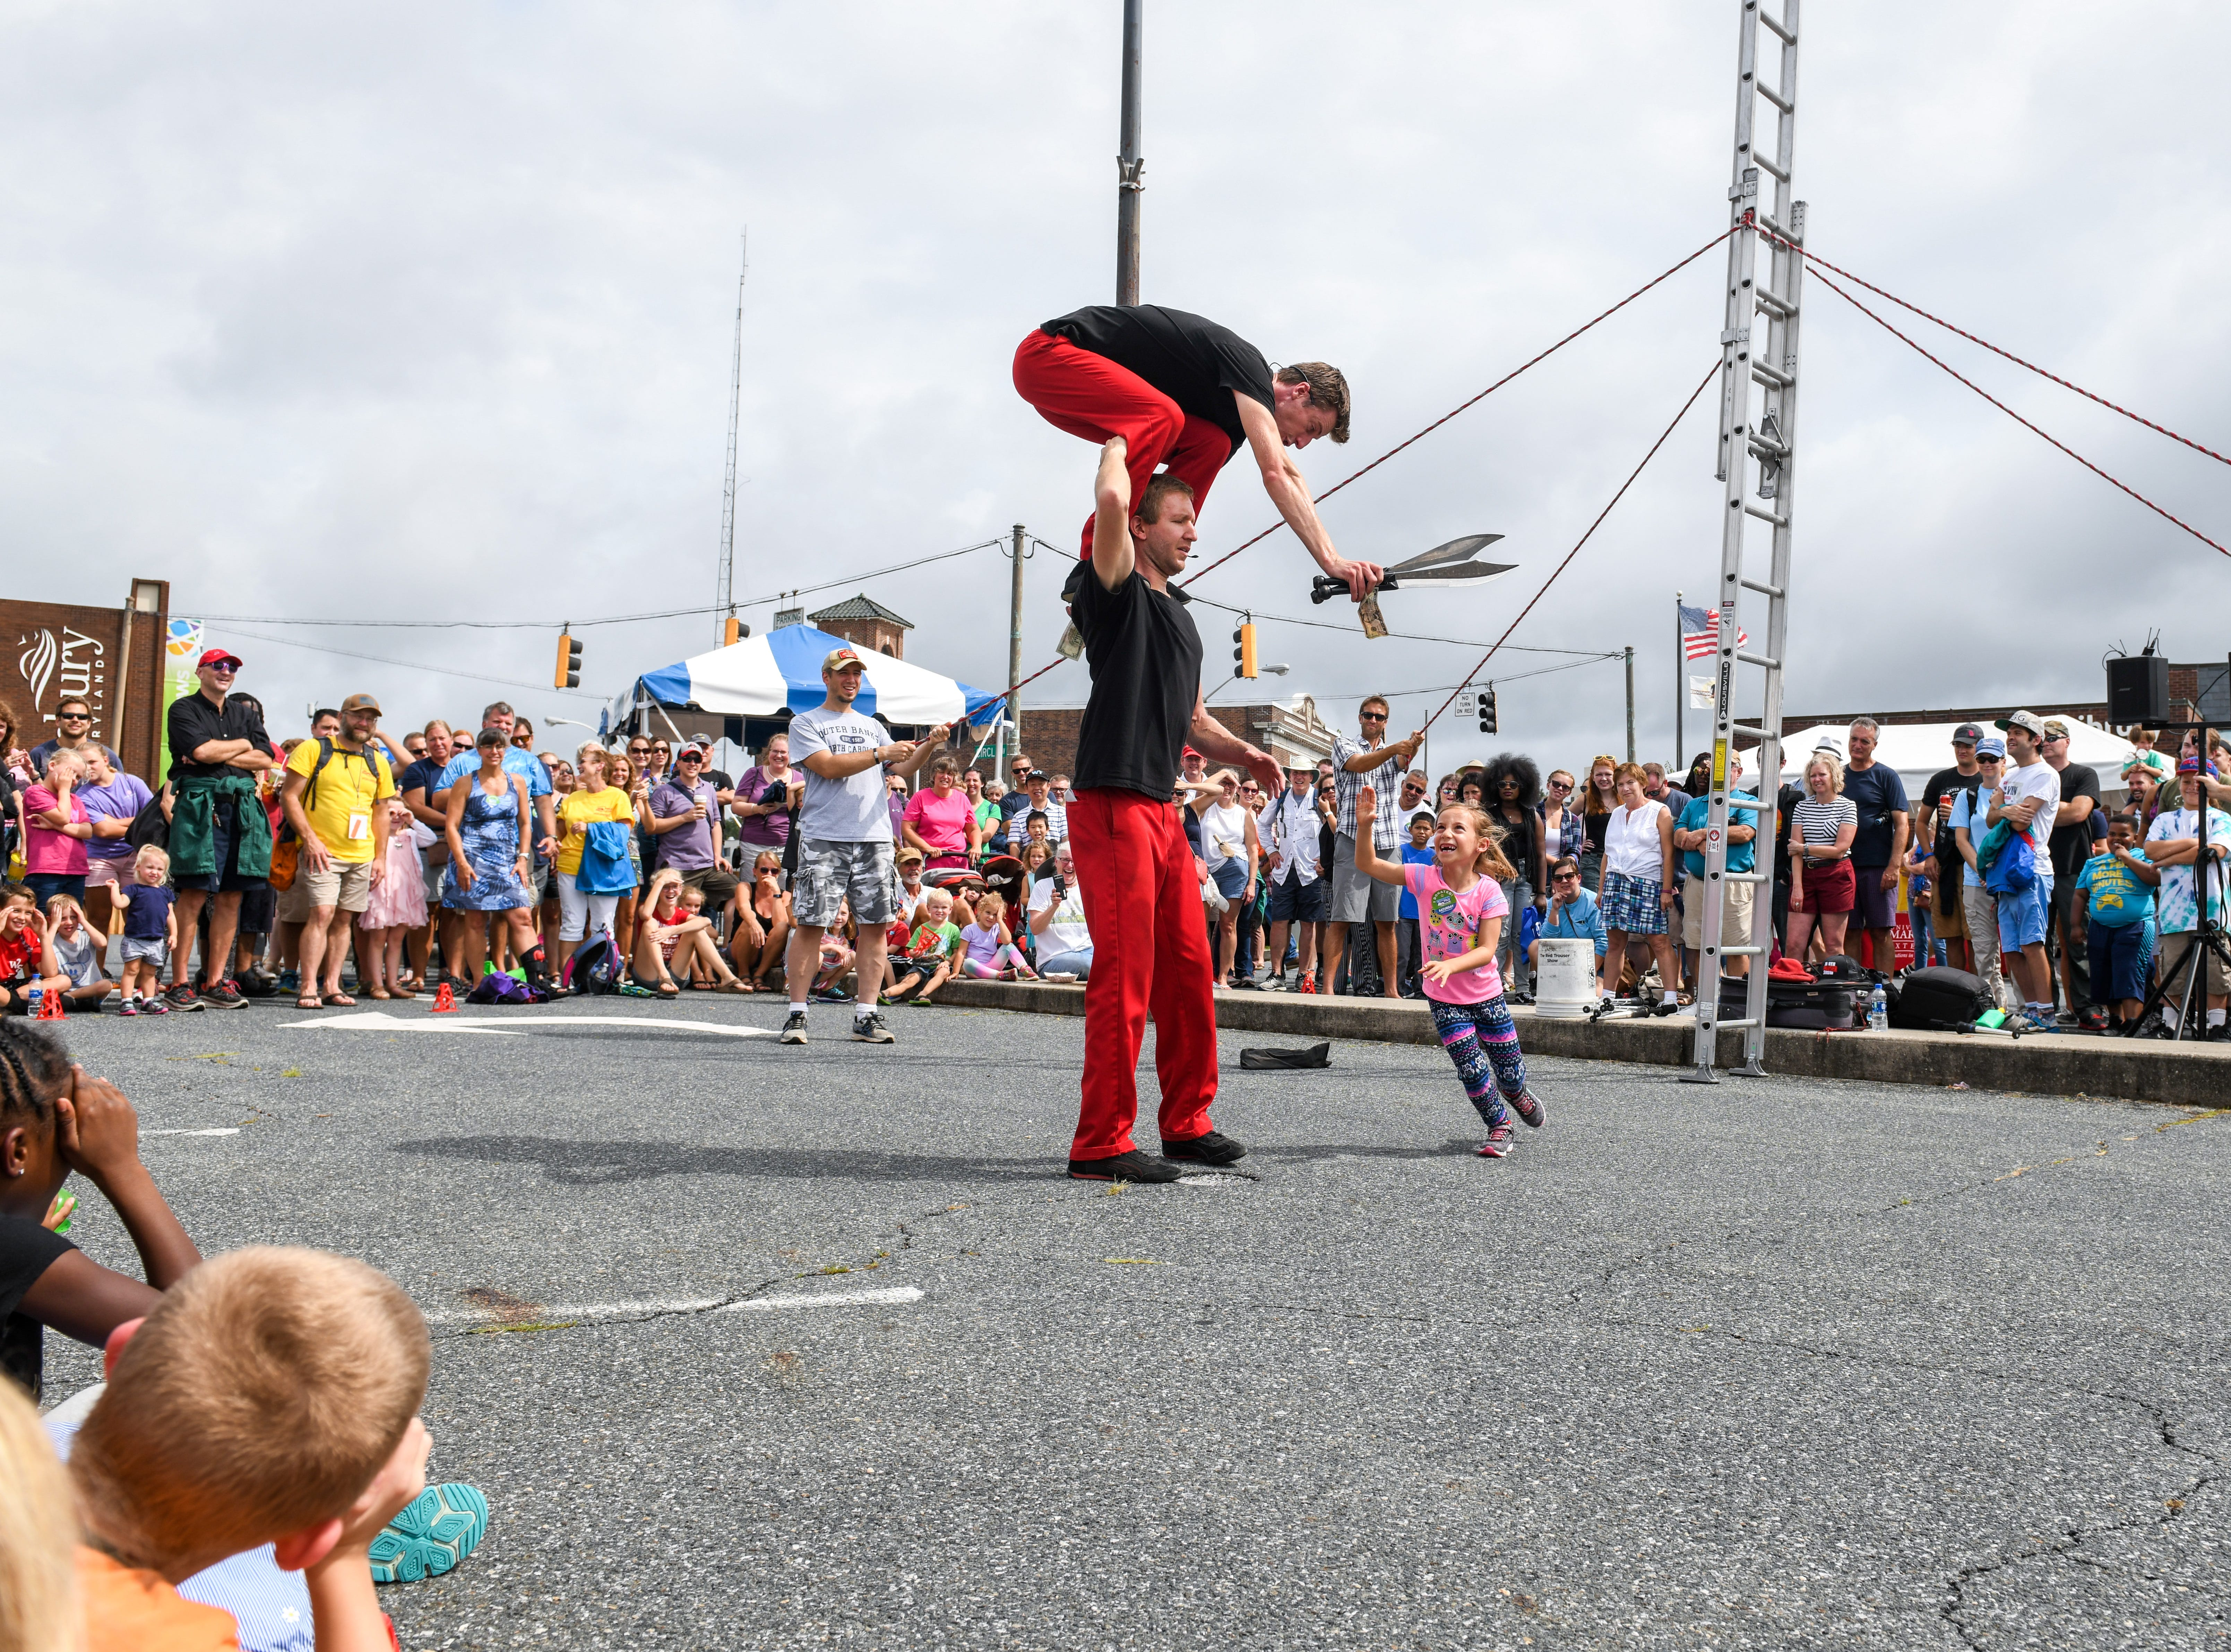 6-year-old Julia Chahalis helps out in the Red Trouser Show performance at the National Folk Festival in Salisbury on Saturday, Sept. 8.